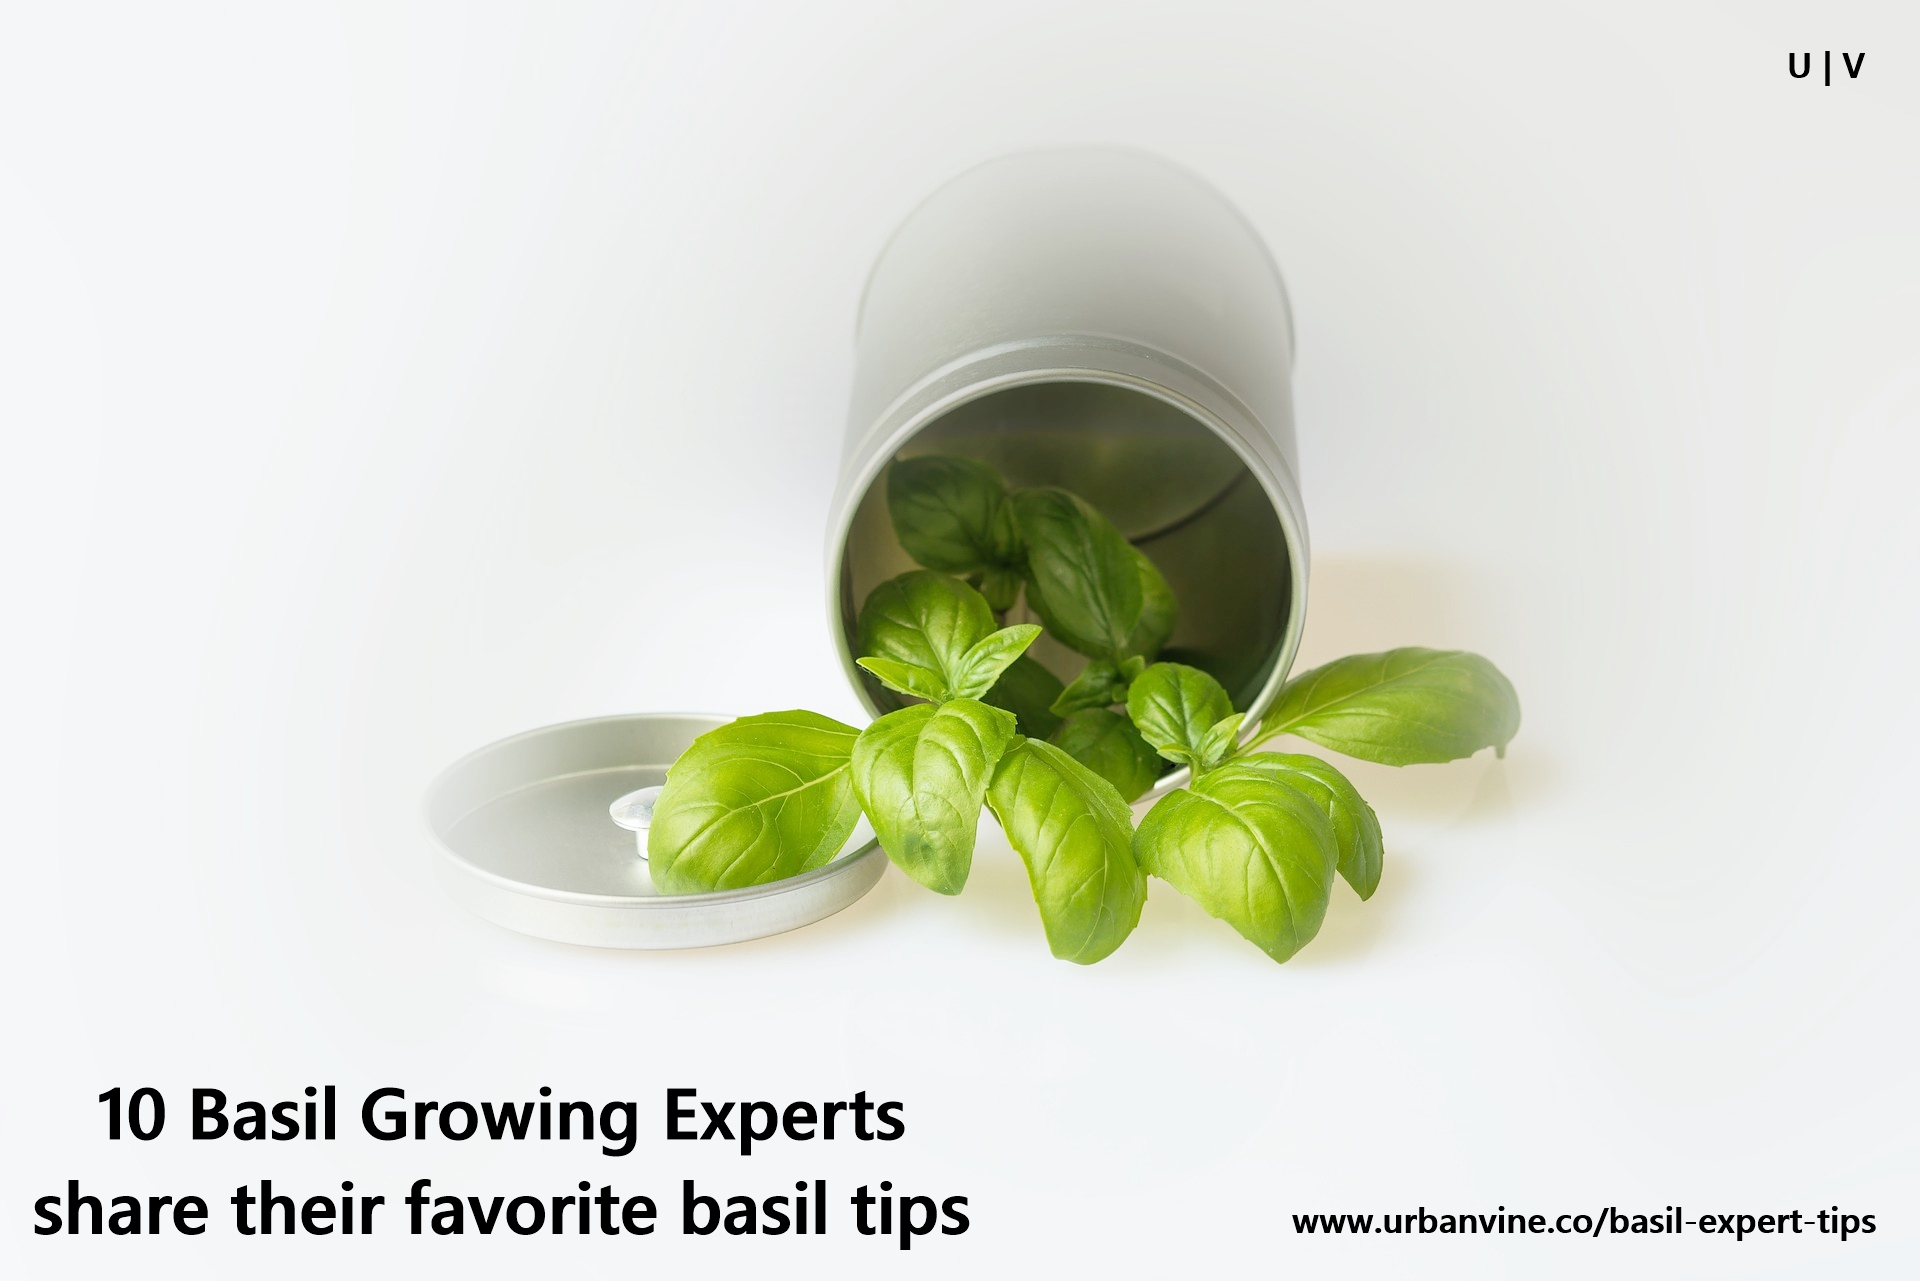 10 Basil Growing Experts share tips to grow better basil